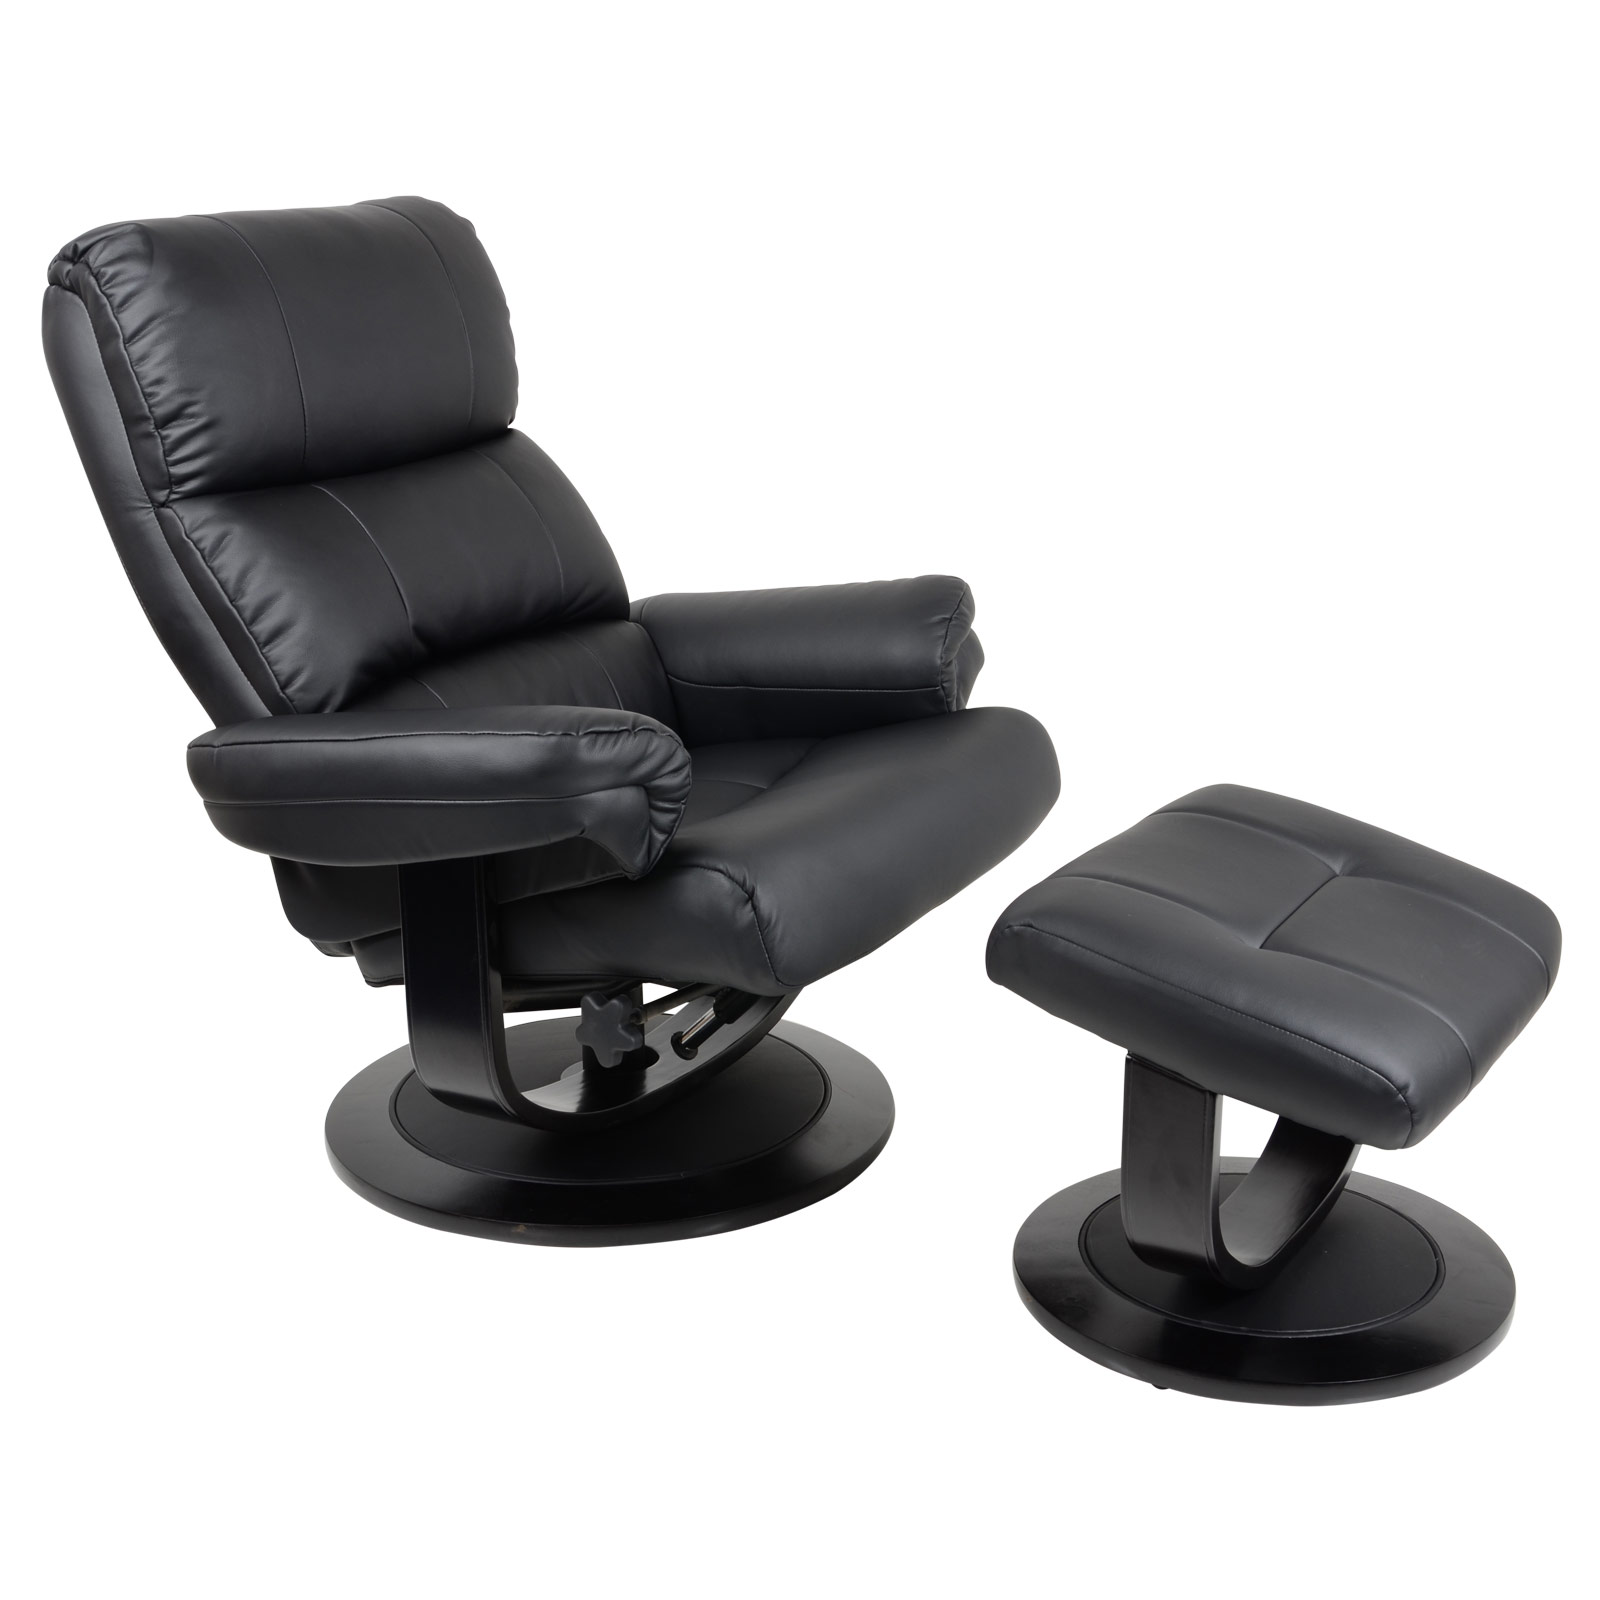 Black Swivel Chair Luxury Black Faux Leather Relaxer Chair Recliner 360